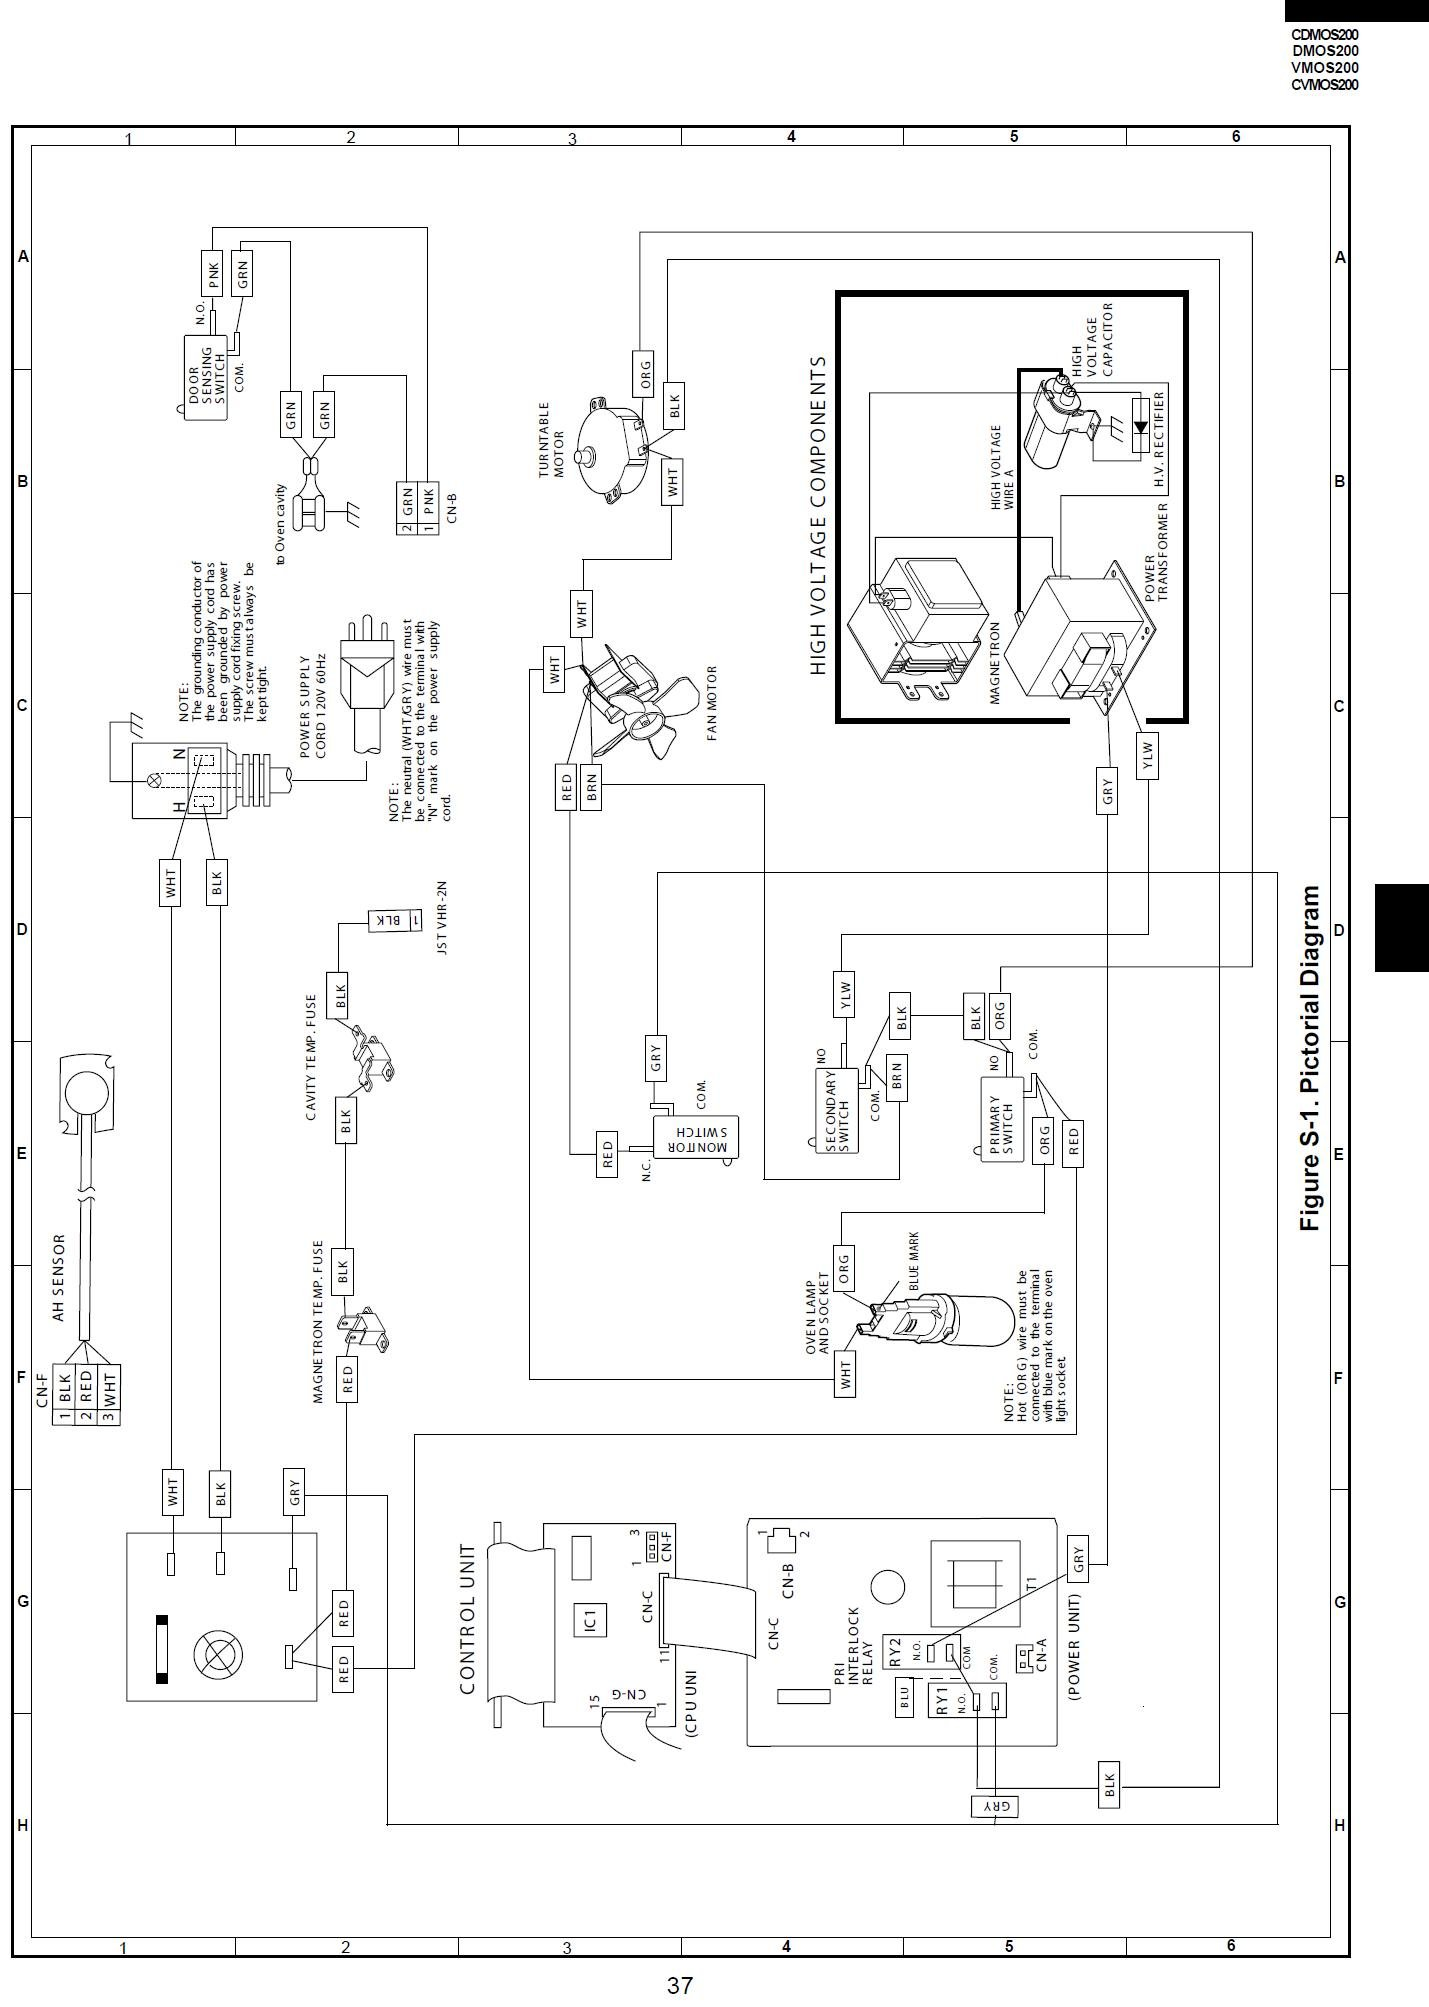 viking wiring diagram yamaha viking wiring diagram